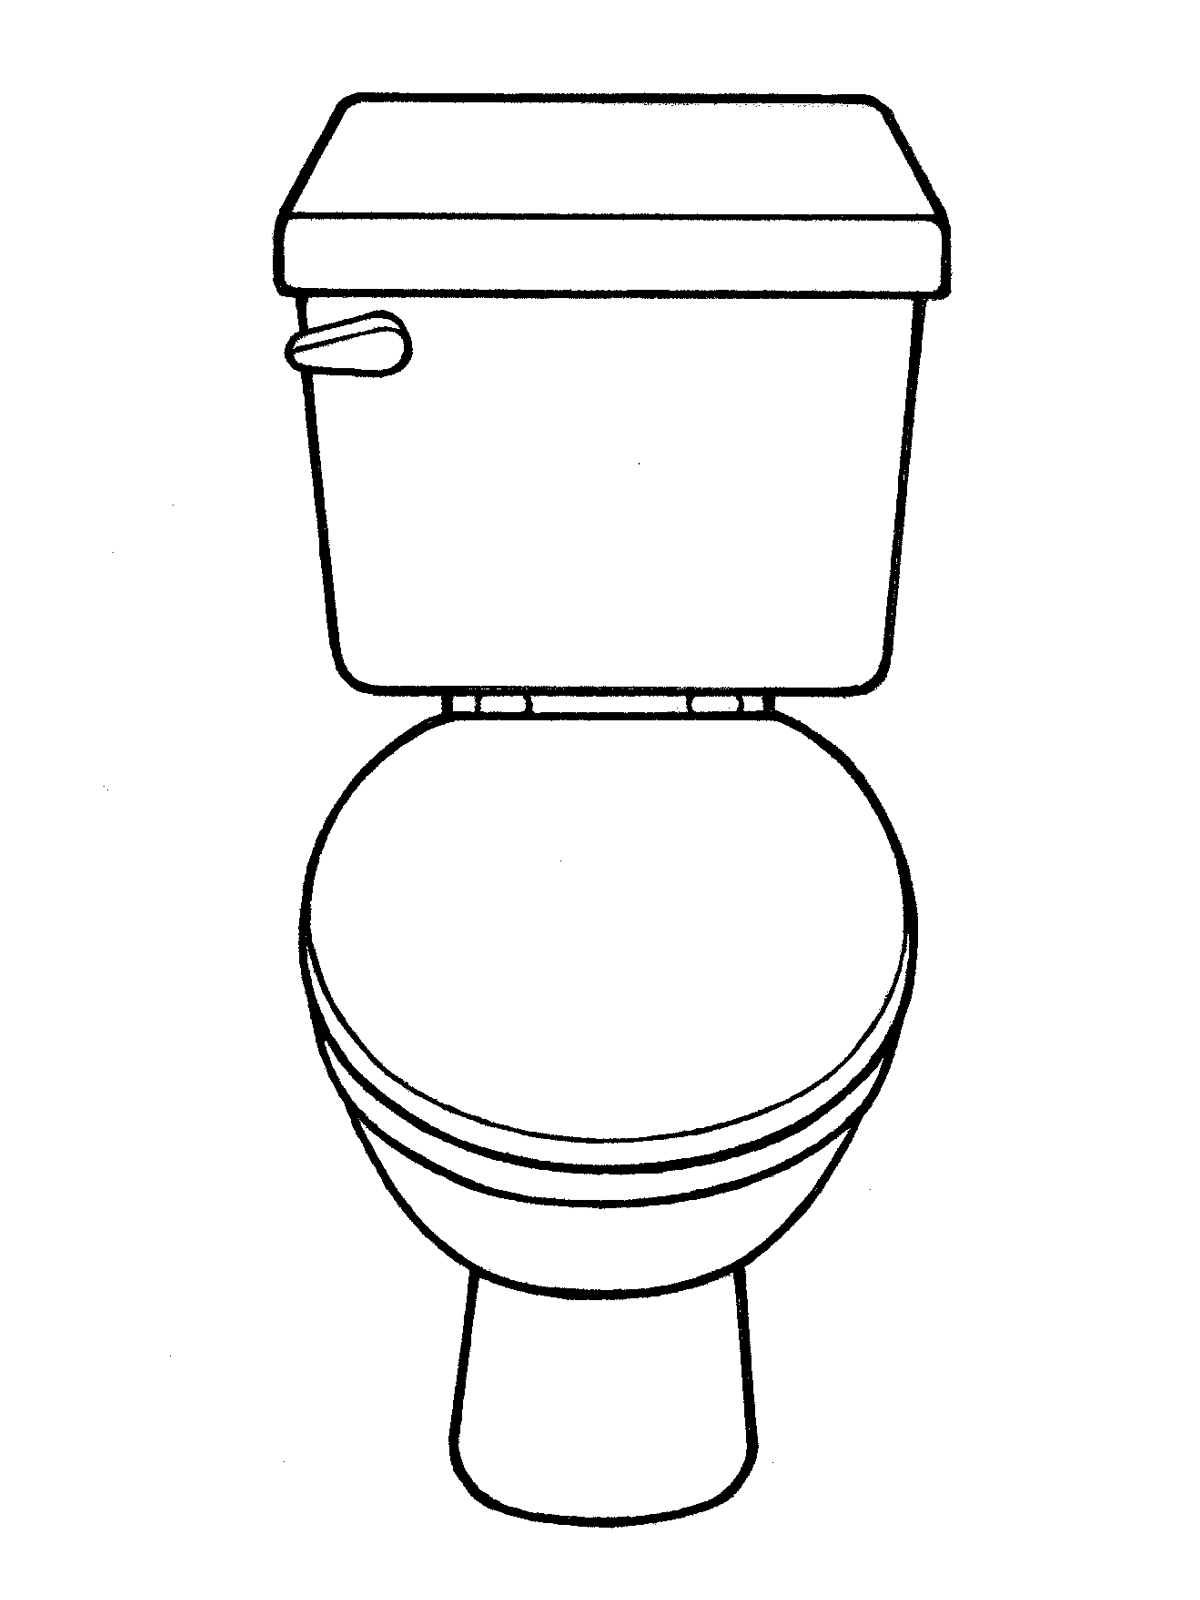 coloring pages potty - photo#35